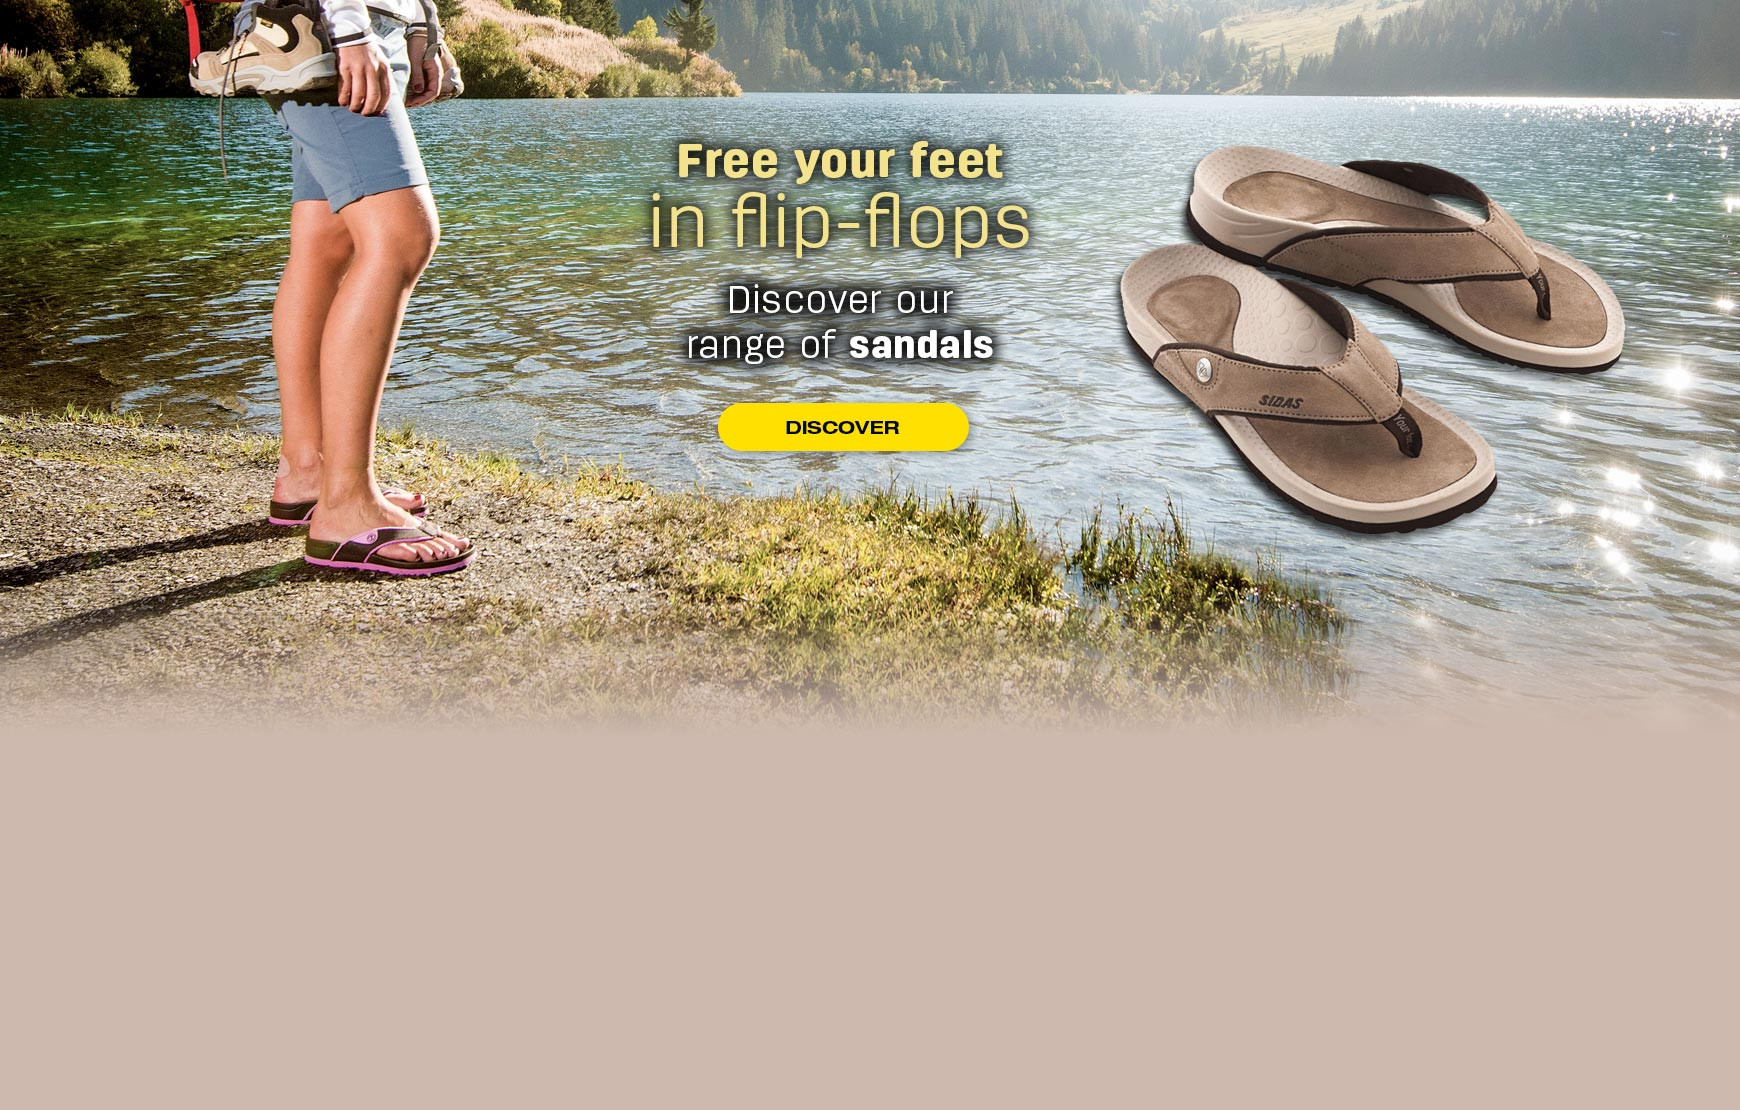 Discover our range of sandals and flip-flops